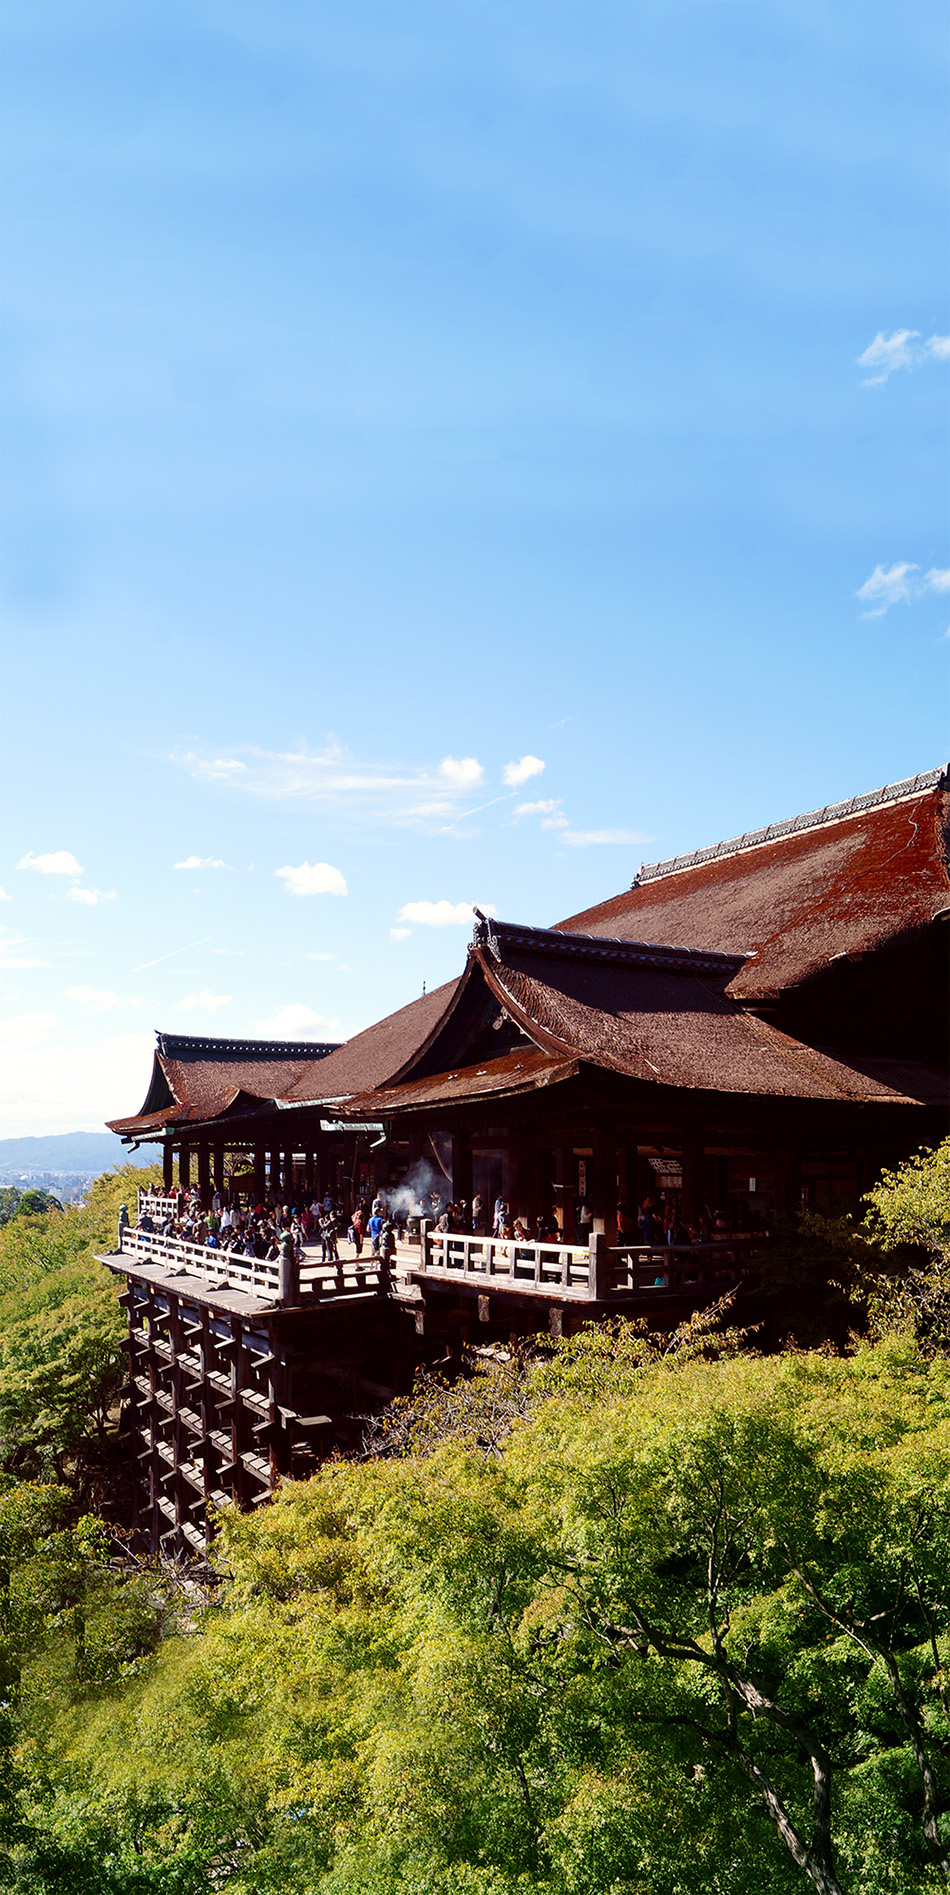 The Kiyomizu Dera is one of the biggest buddhist temples in Japan and certainly the most beautiful one in Kyoto